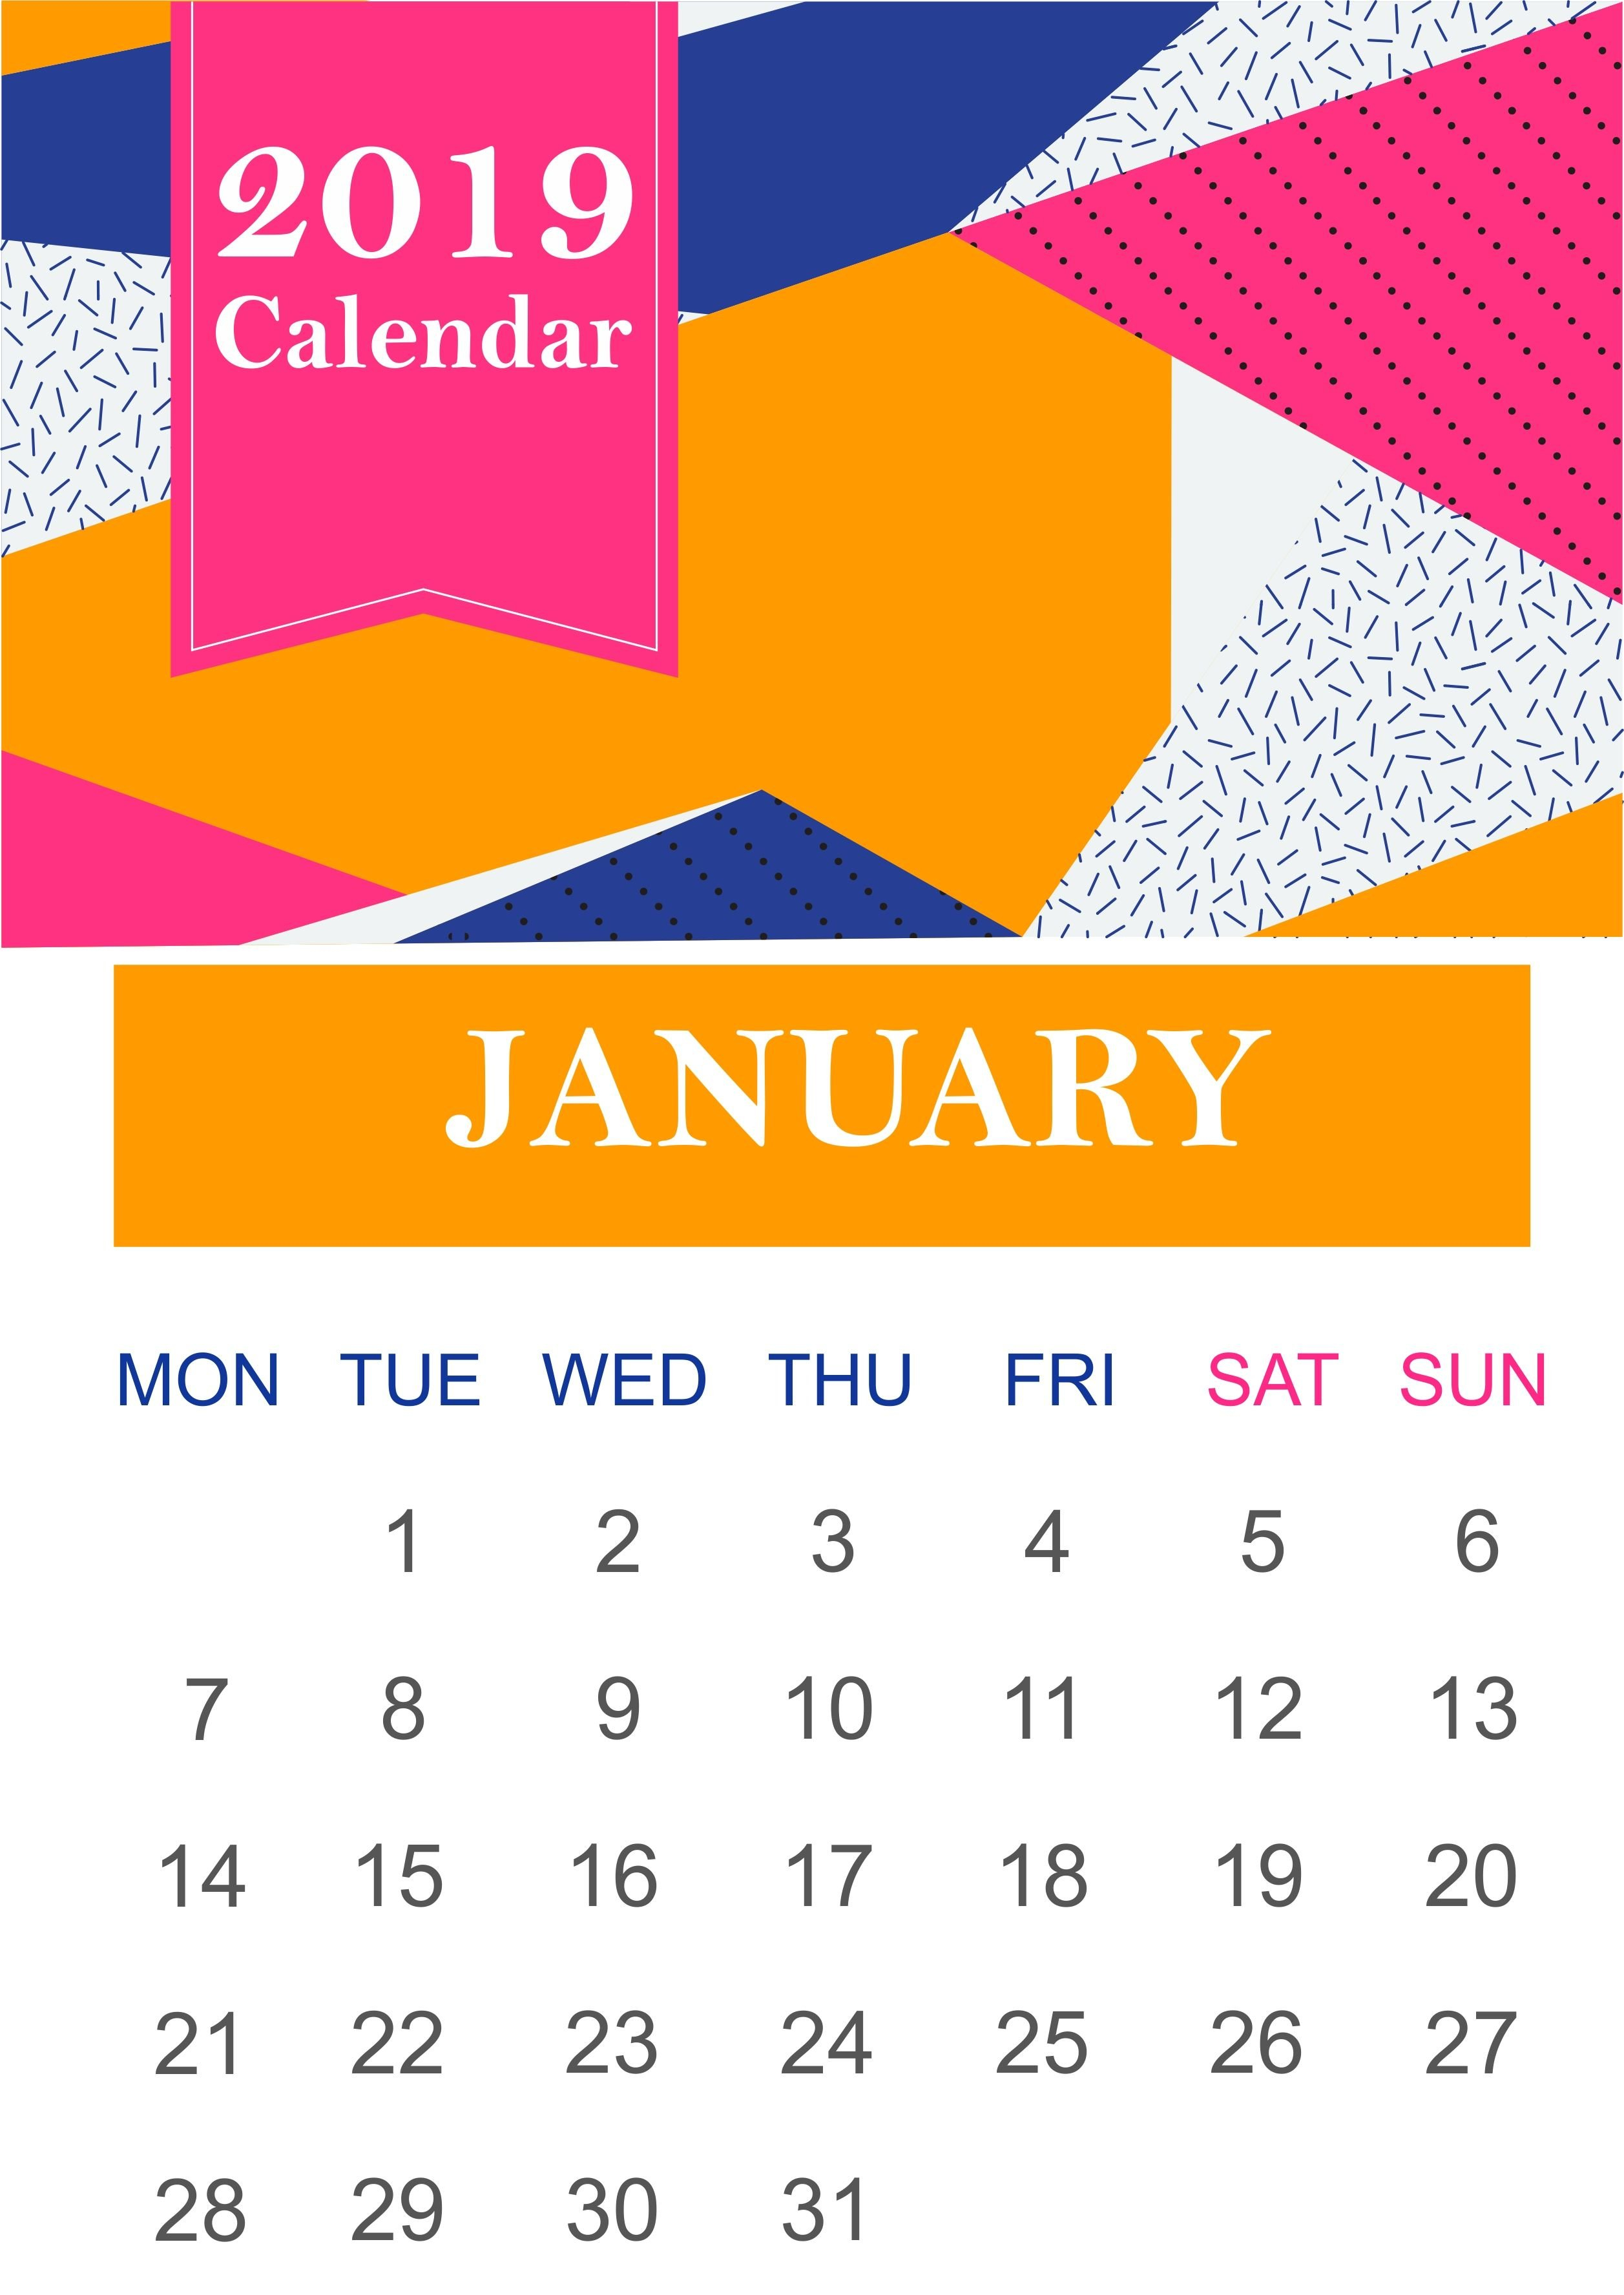 Free Sample Template Of January 2019 Calendar Pdf Excel Wordjanuary January 6 2019 Calendar